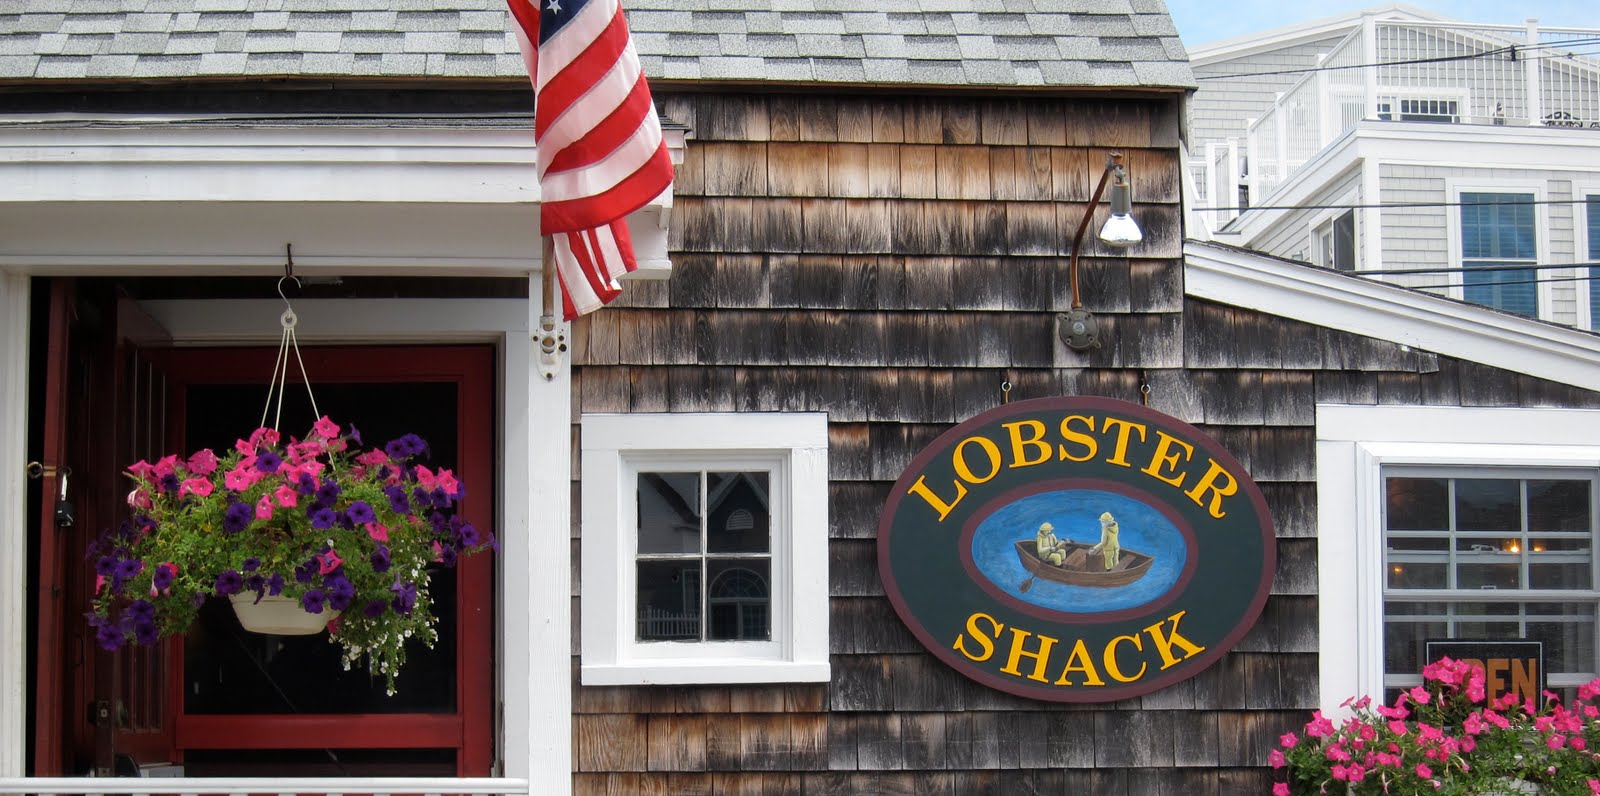 I Ve Just Returned From A Week S Vacation In Ogunquit Me The Idyllic Seaside Town Where Go Every Year To Sample As Much Lobster Centric New England